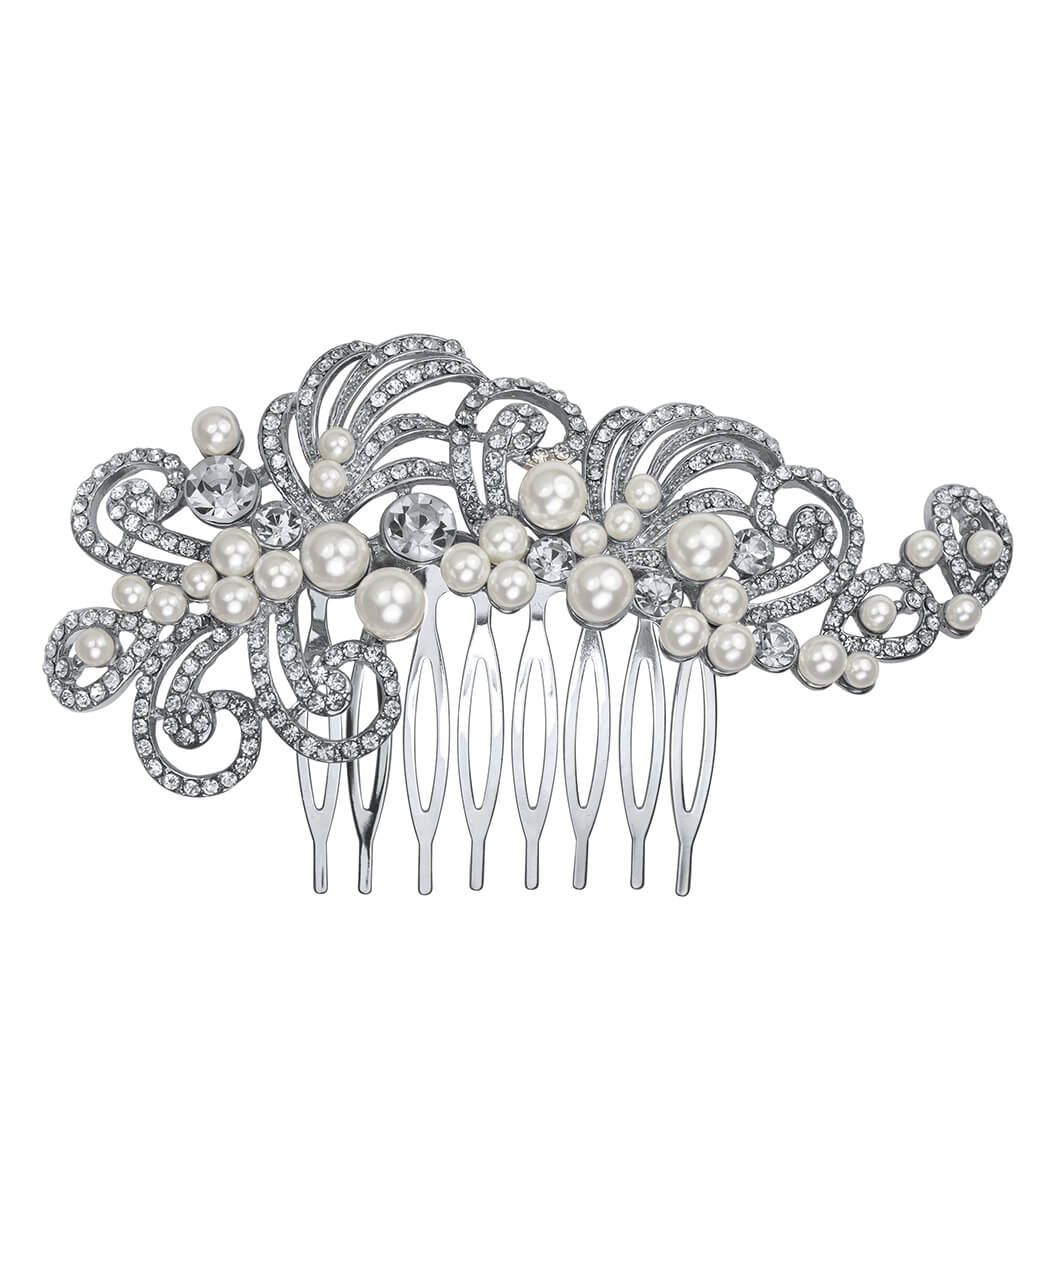 Pearl and Crystal Curl Hair Comb